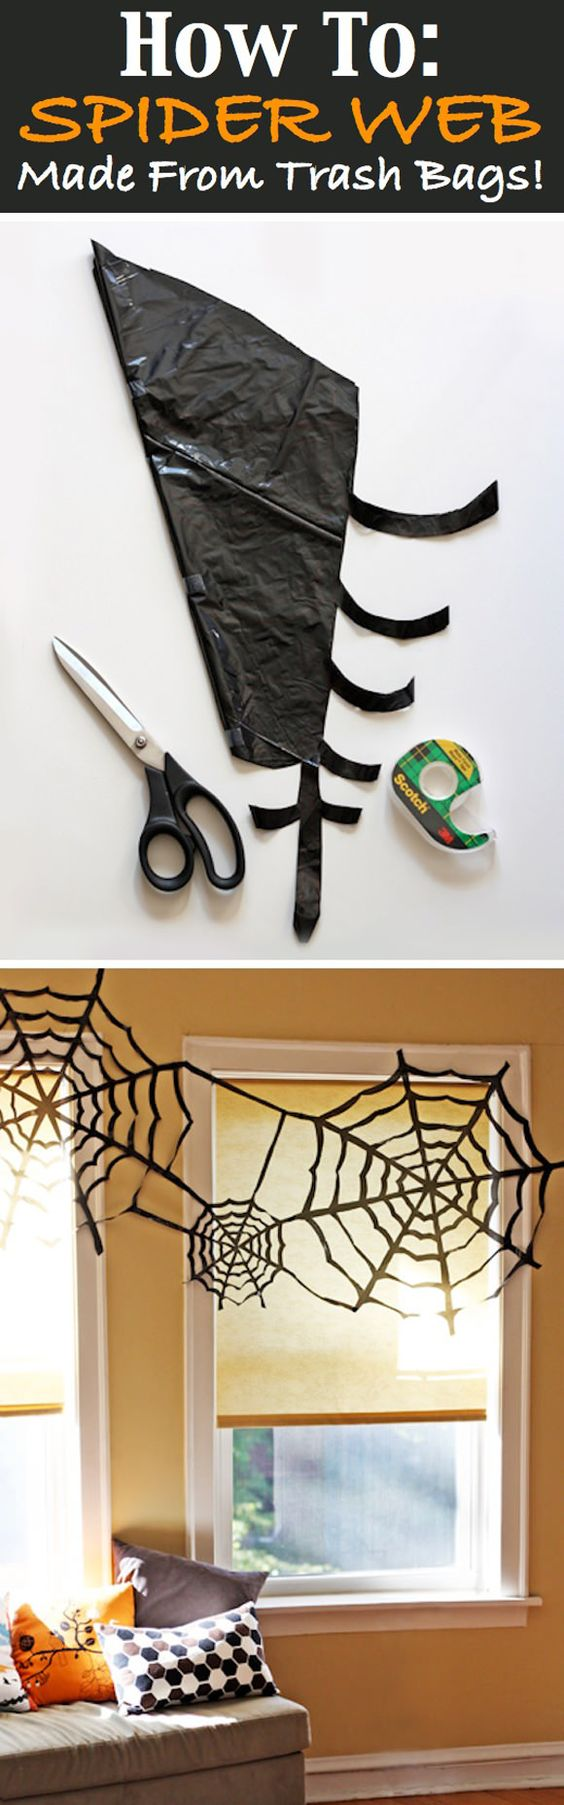 DIY Spiderwebs Made From Trashbags: